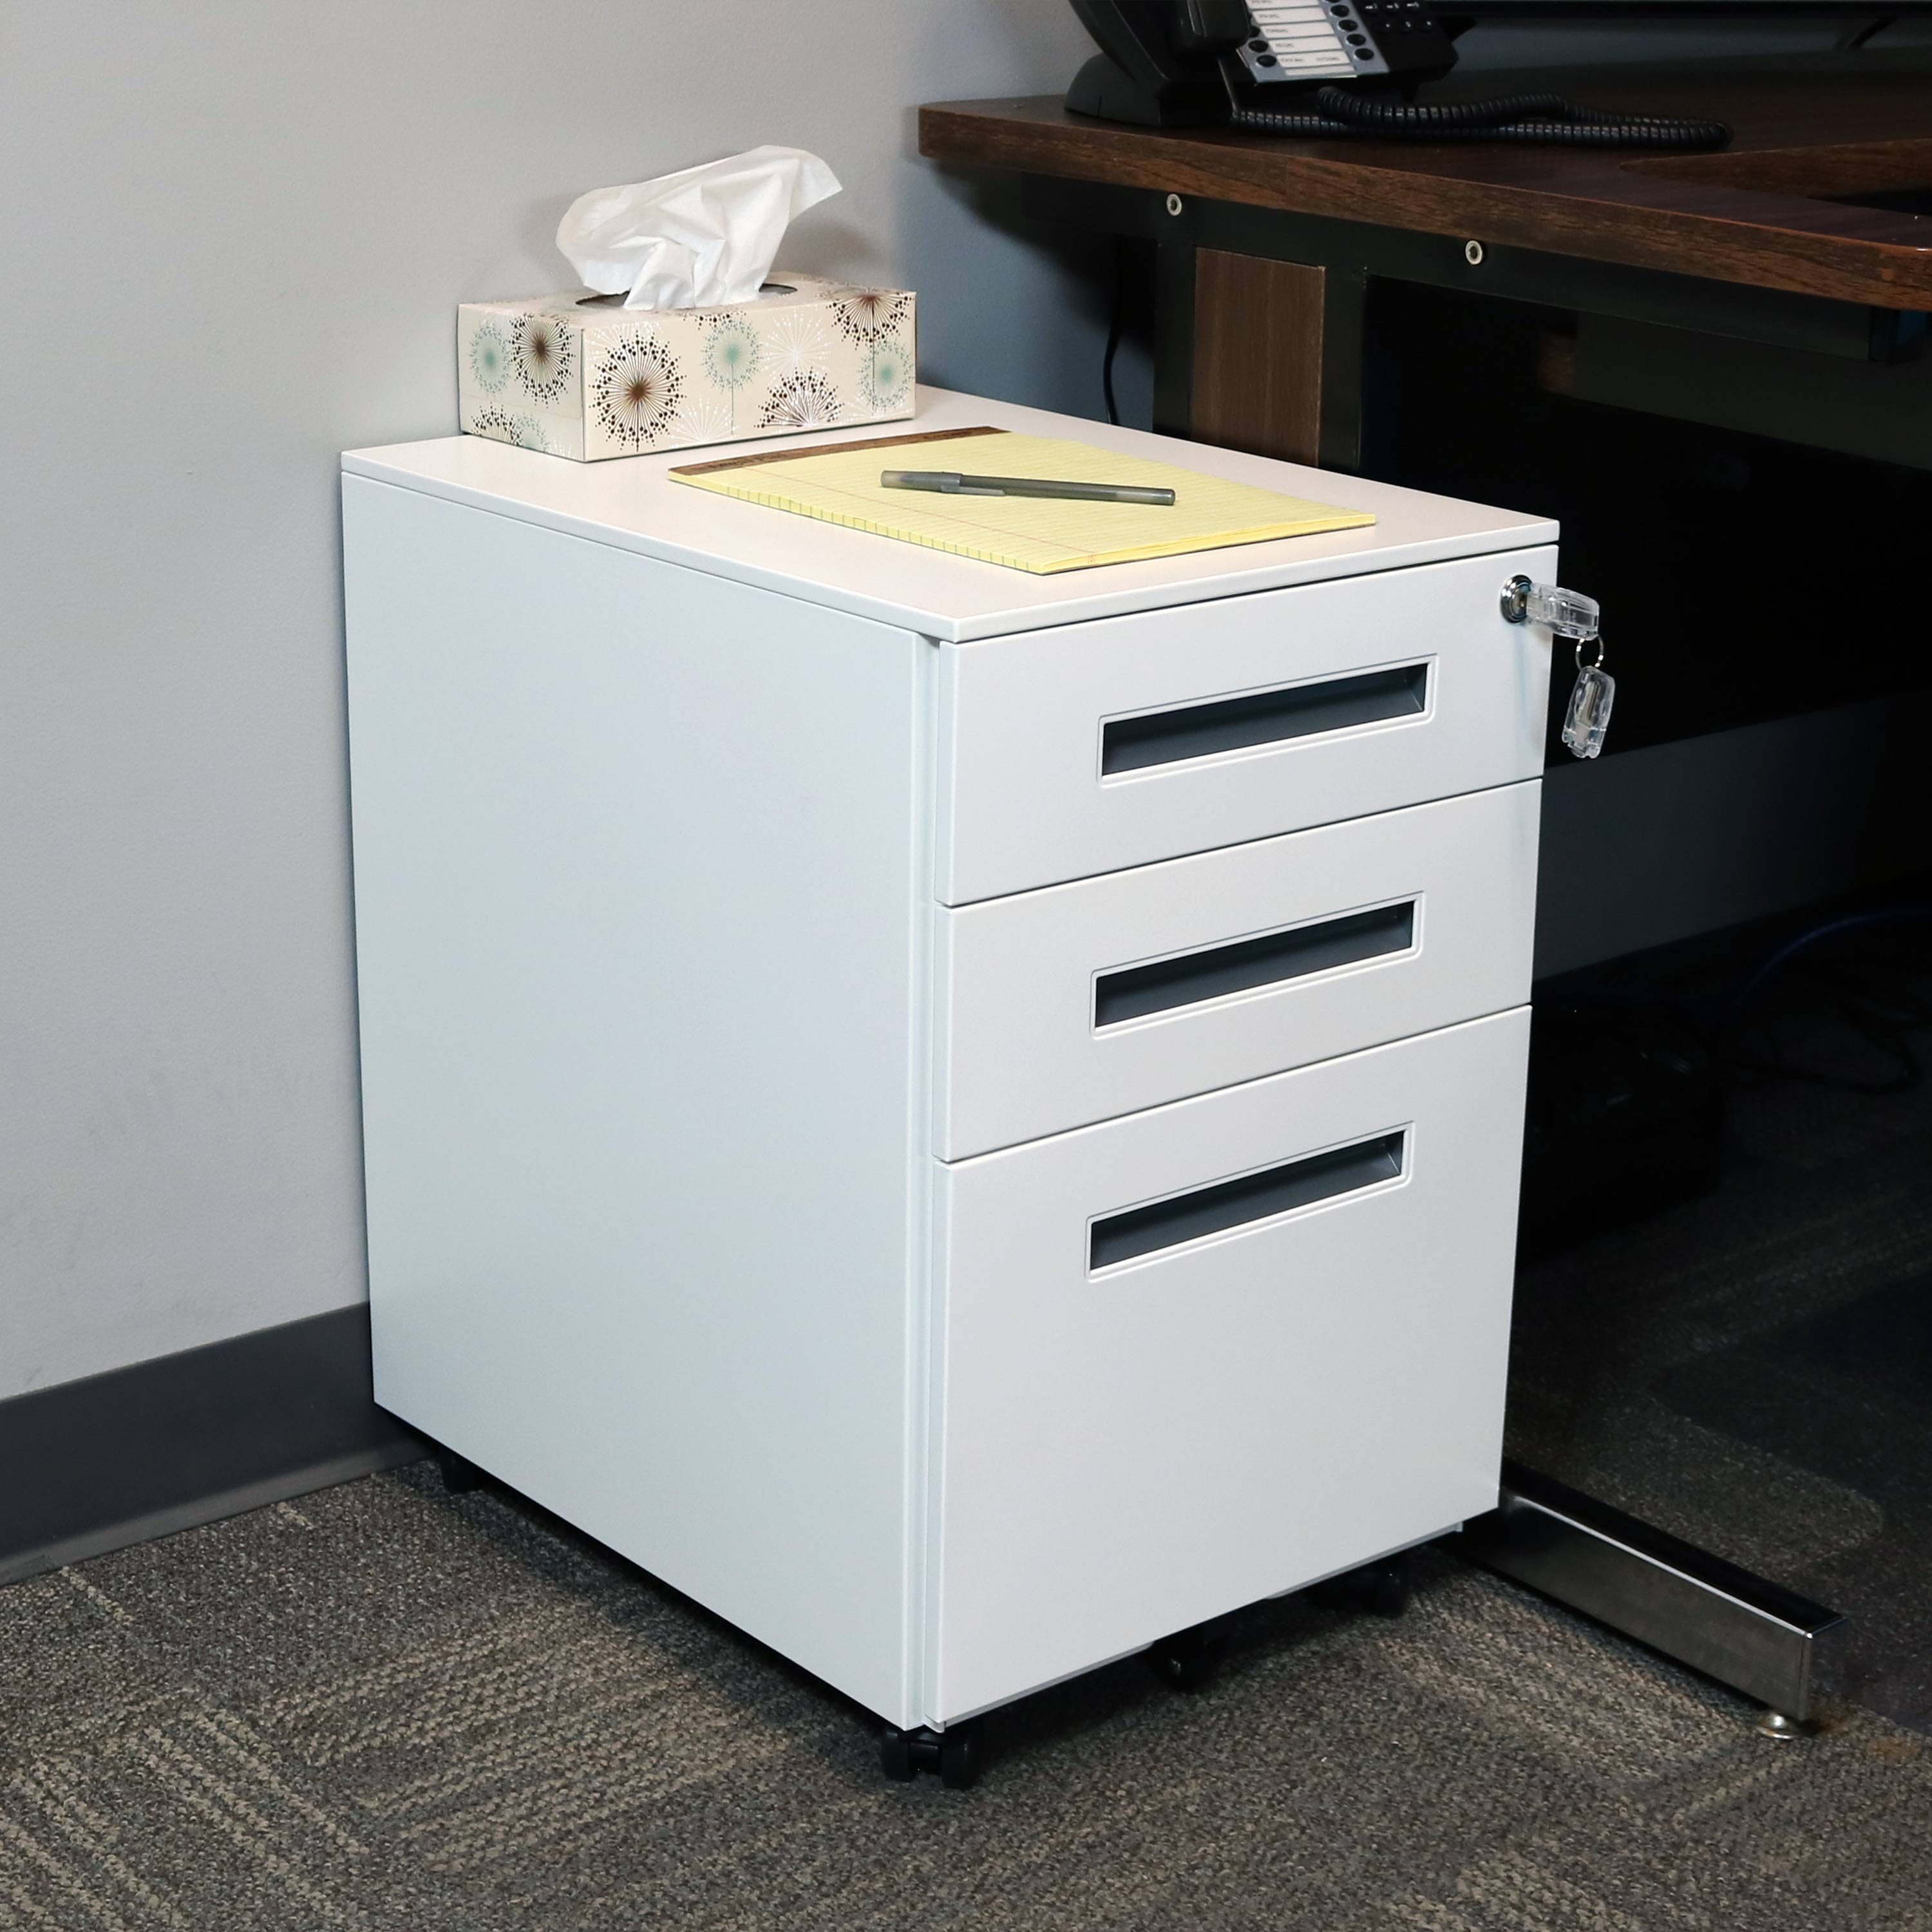 Small Filing Cabinet Casl Brands Rolling Mobile File Cabinet Pedestal With Keyed Lock Small Steel 3 Drawer Filing Storage System White With Gray Handles